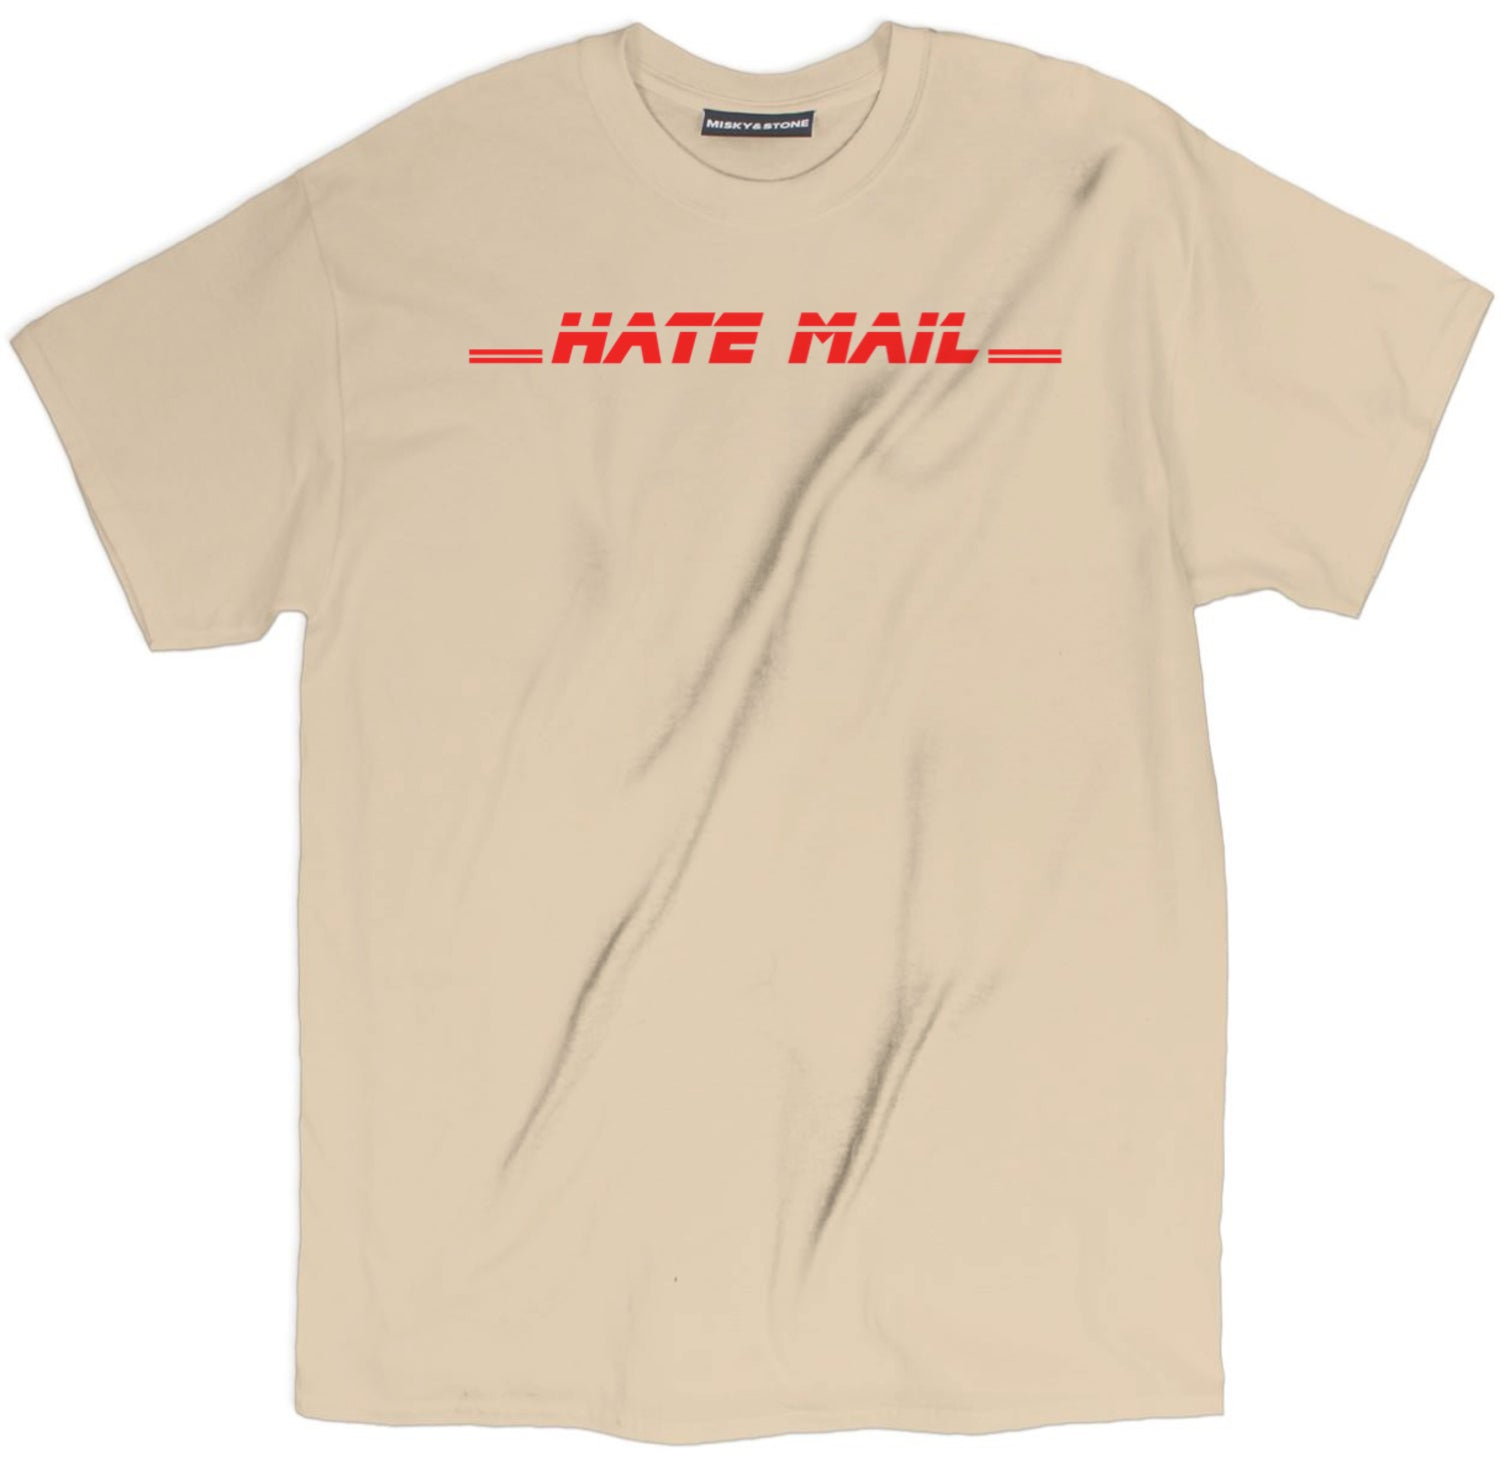 Hate Mail Shirt